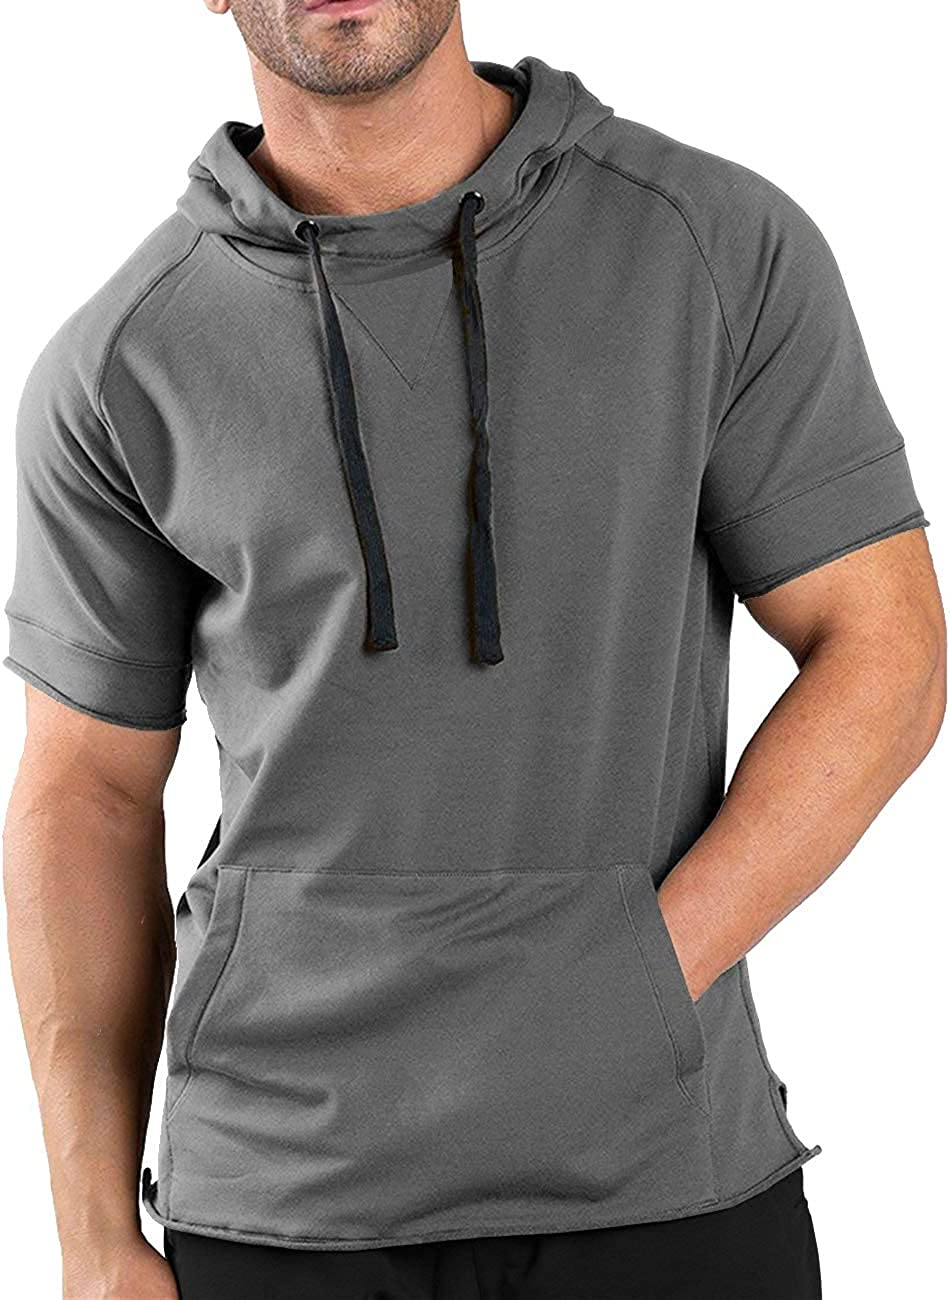 COOFANDY Men's Fashion Athletic Hoodies Pullover Muscle Fit Workout Gym Sweatshirt Cotton Short Sleeve Hooded T-Shirts